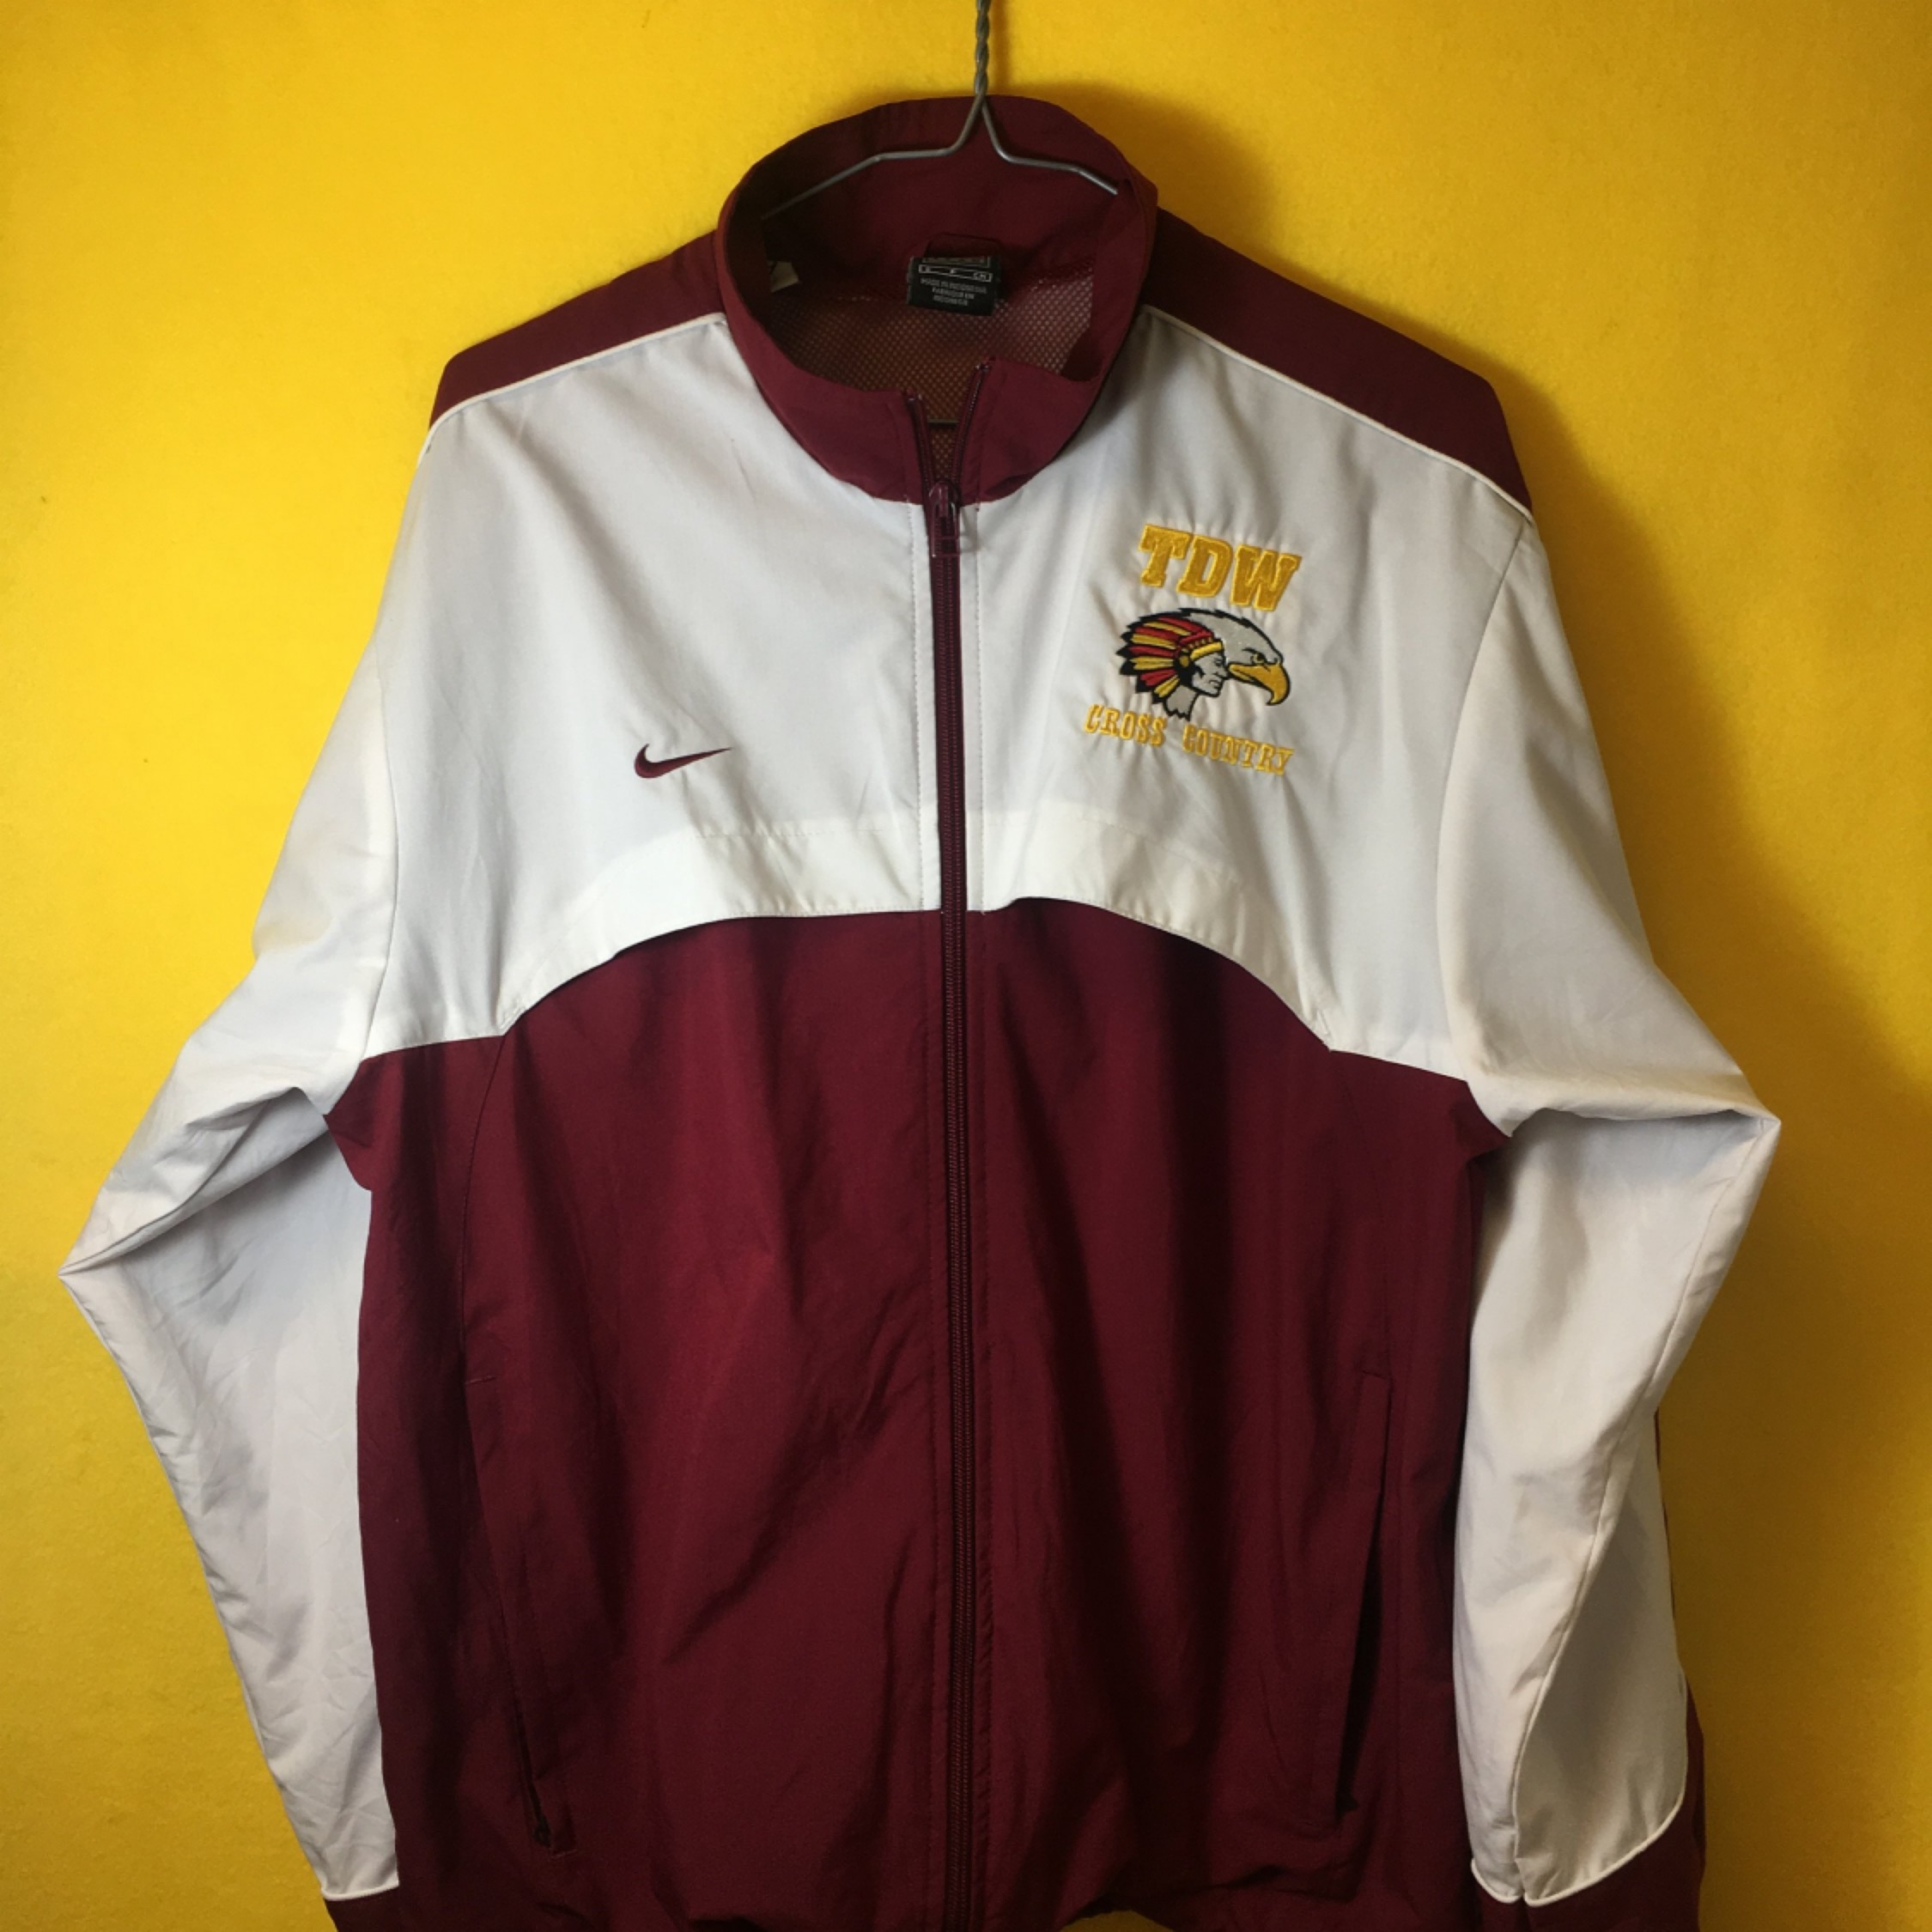 Vintage 90S Nike Team Windbreaker Jacket